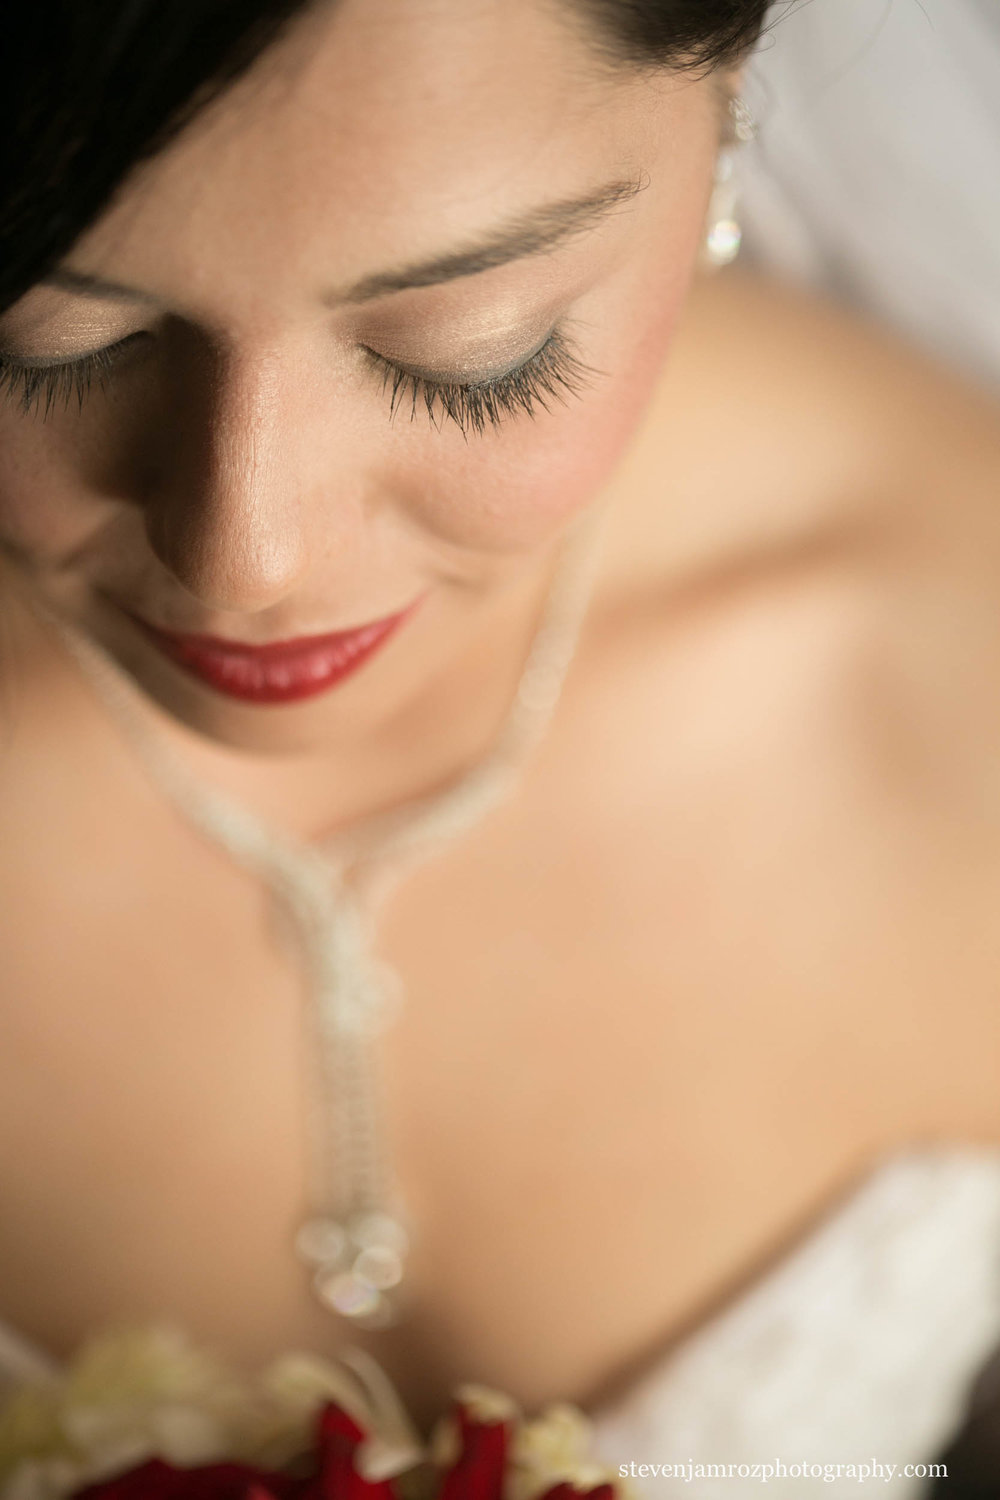 eyelashes-bride-raleigh-steven-jamroz-photography-0313.jpg